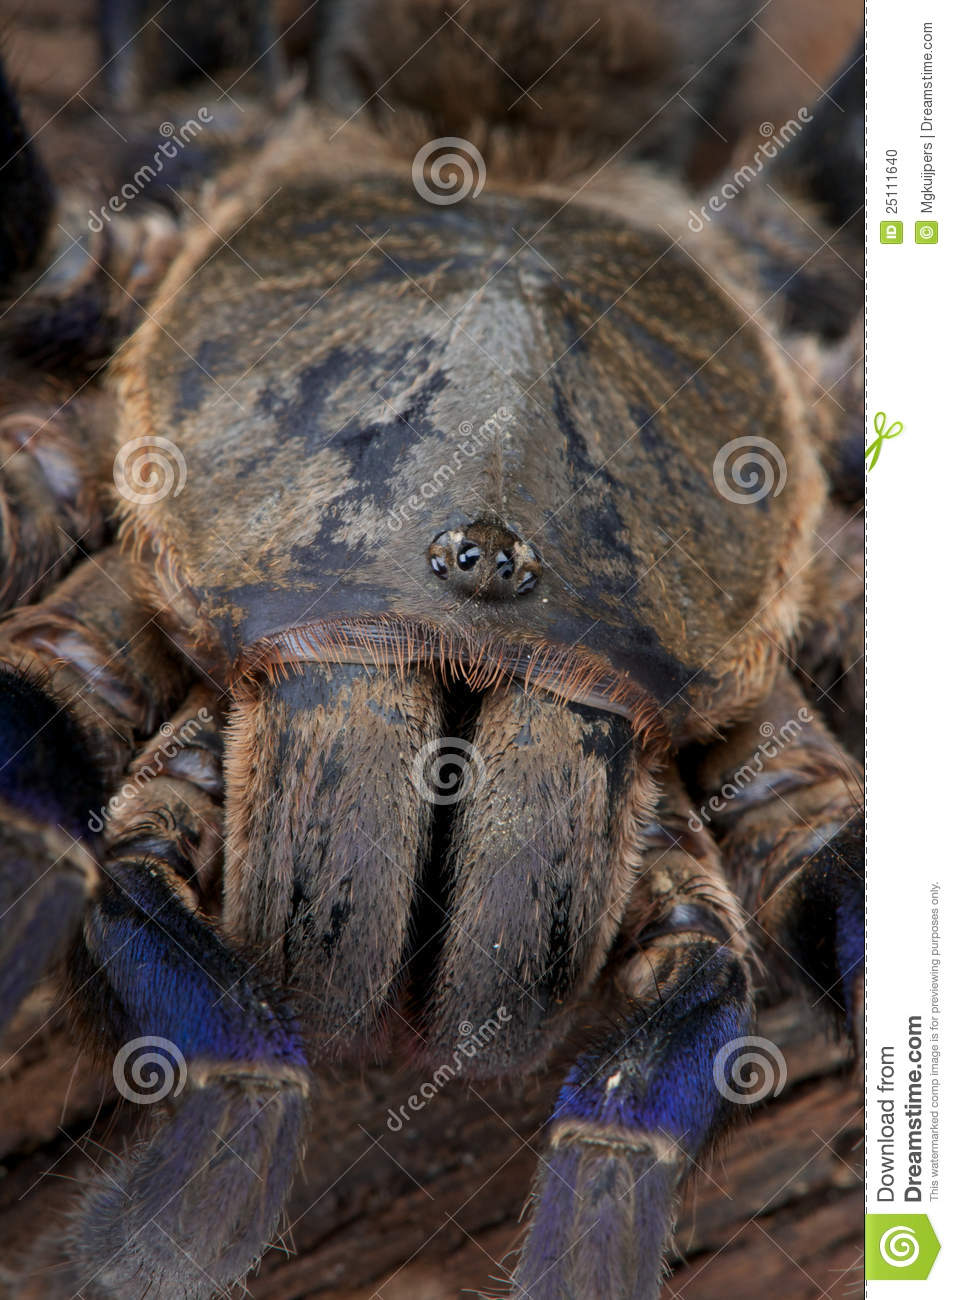 Cobalt Blue Tarantula Stock Photo - Image: 25111640